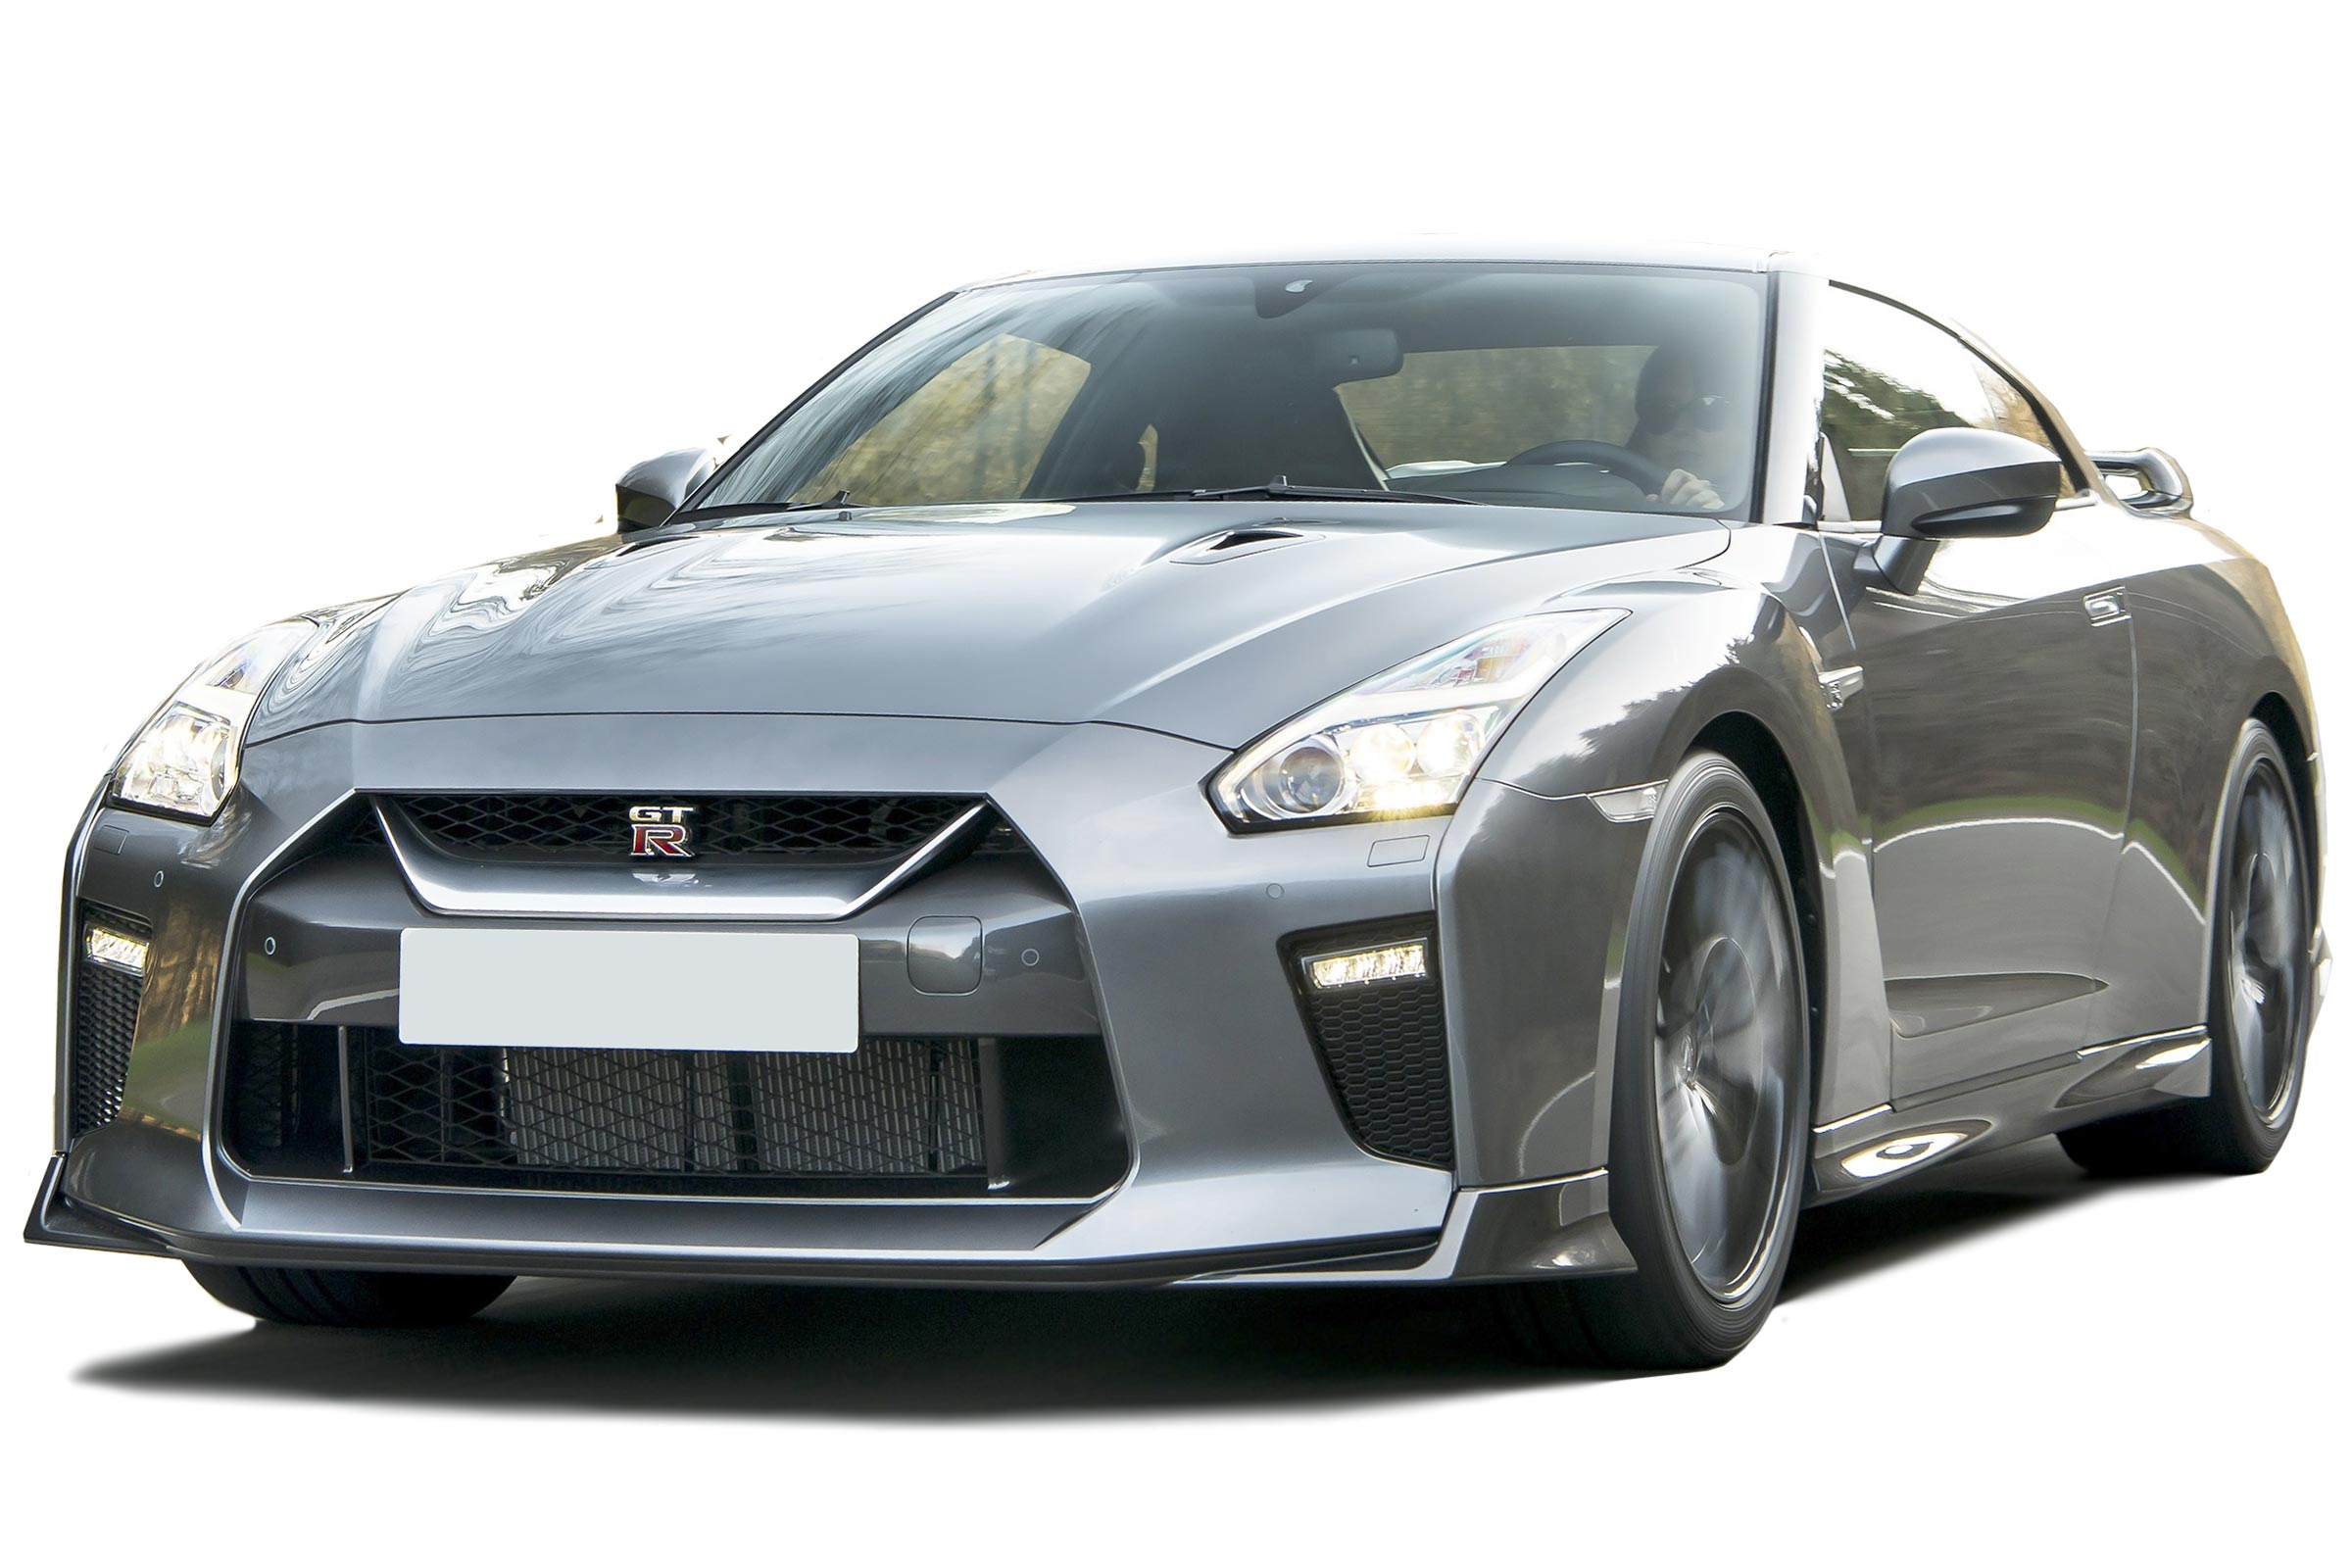 Used Nissan Gt-r for Sale New Nissan Gt R Coupe Owner Reviews Mpg Problems Reliability